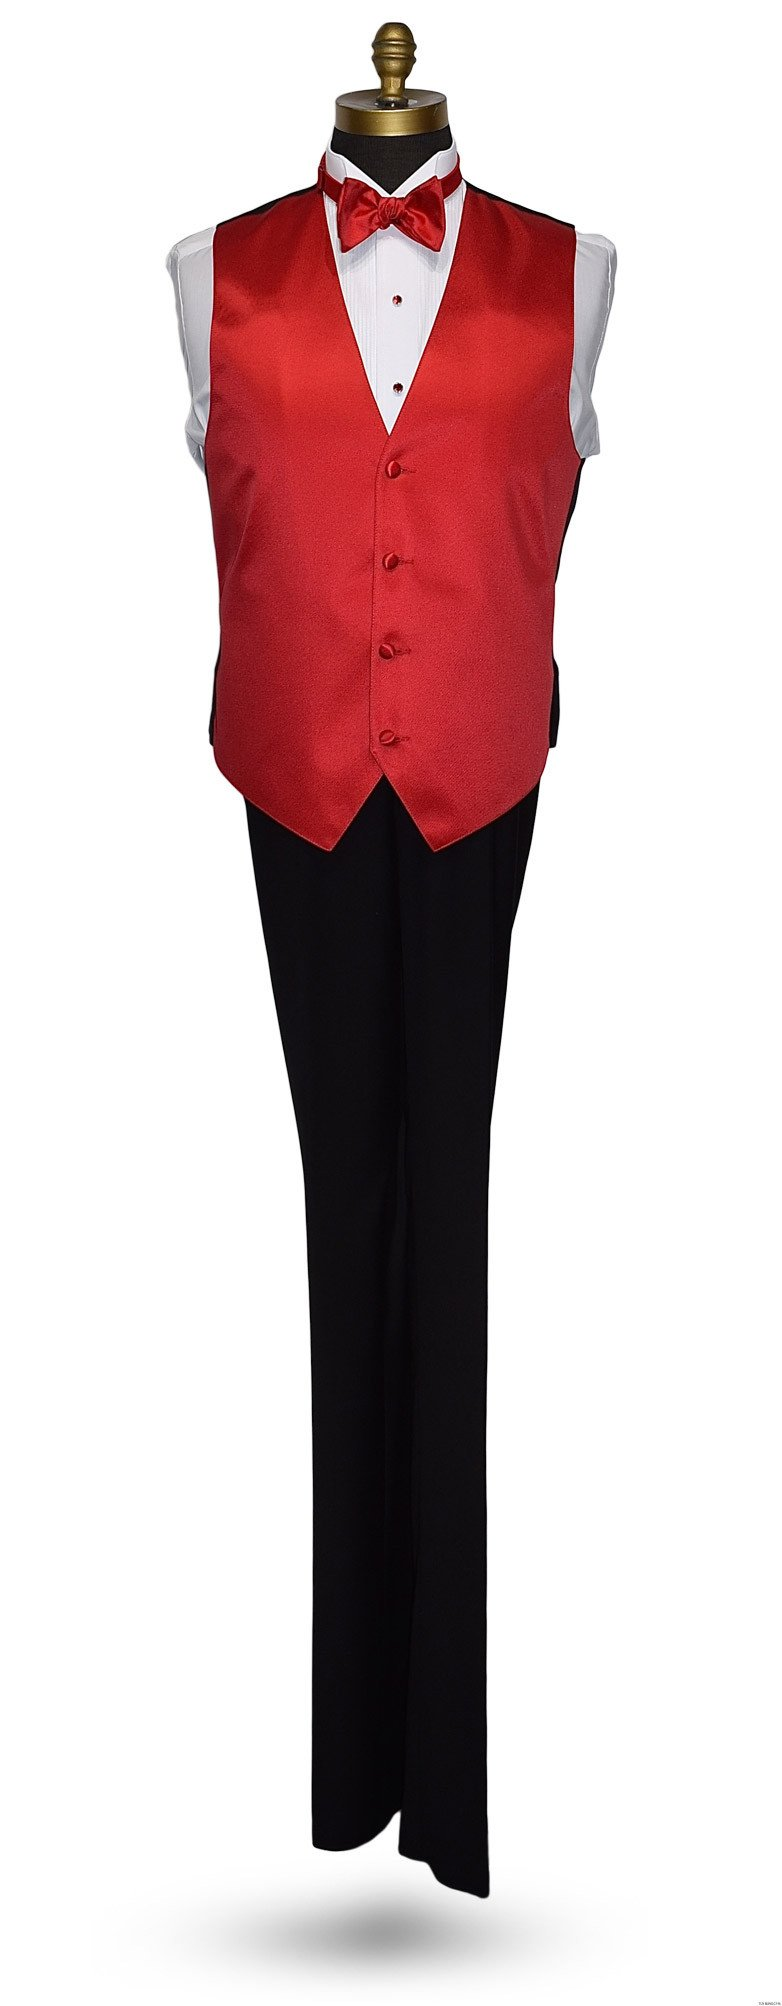 valentina ruby red vest and bowtie for men's tuxedo at tuxbling.com